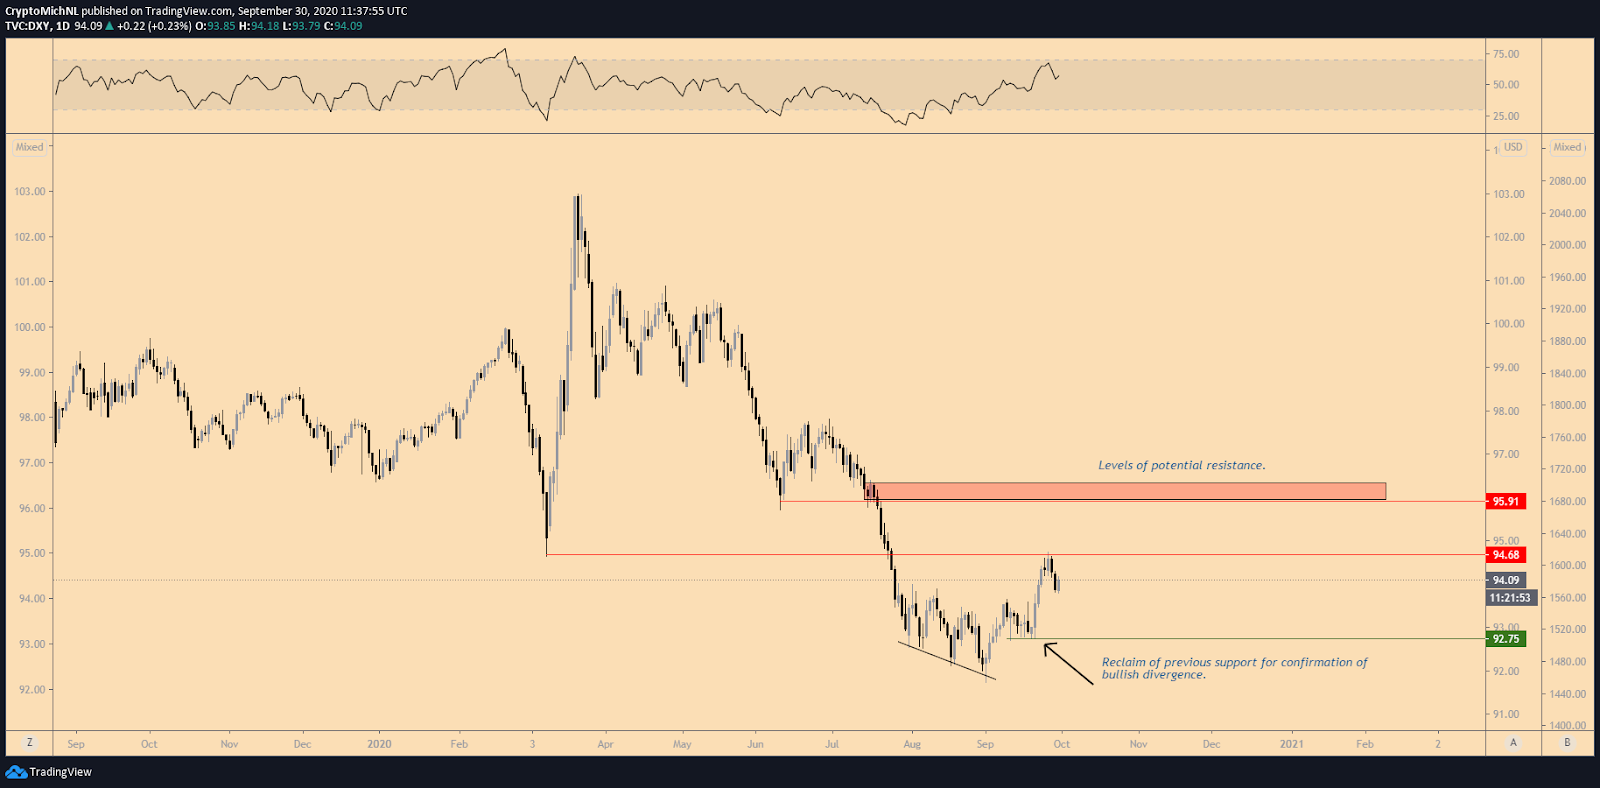 U.S. Dollar Currency Index 1-day chart. Source: TradingView